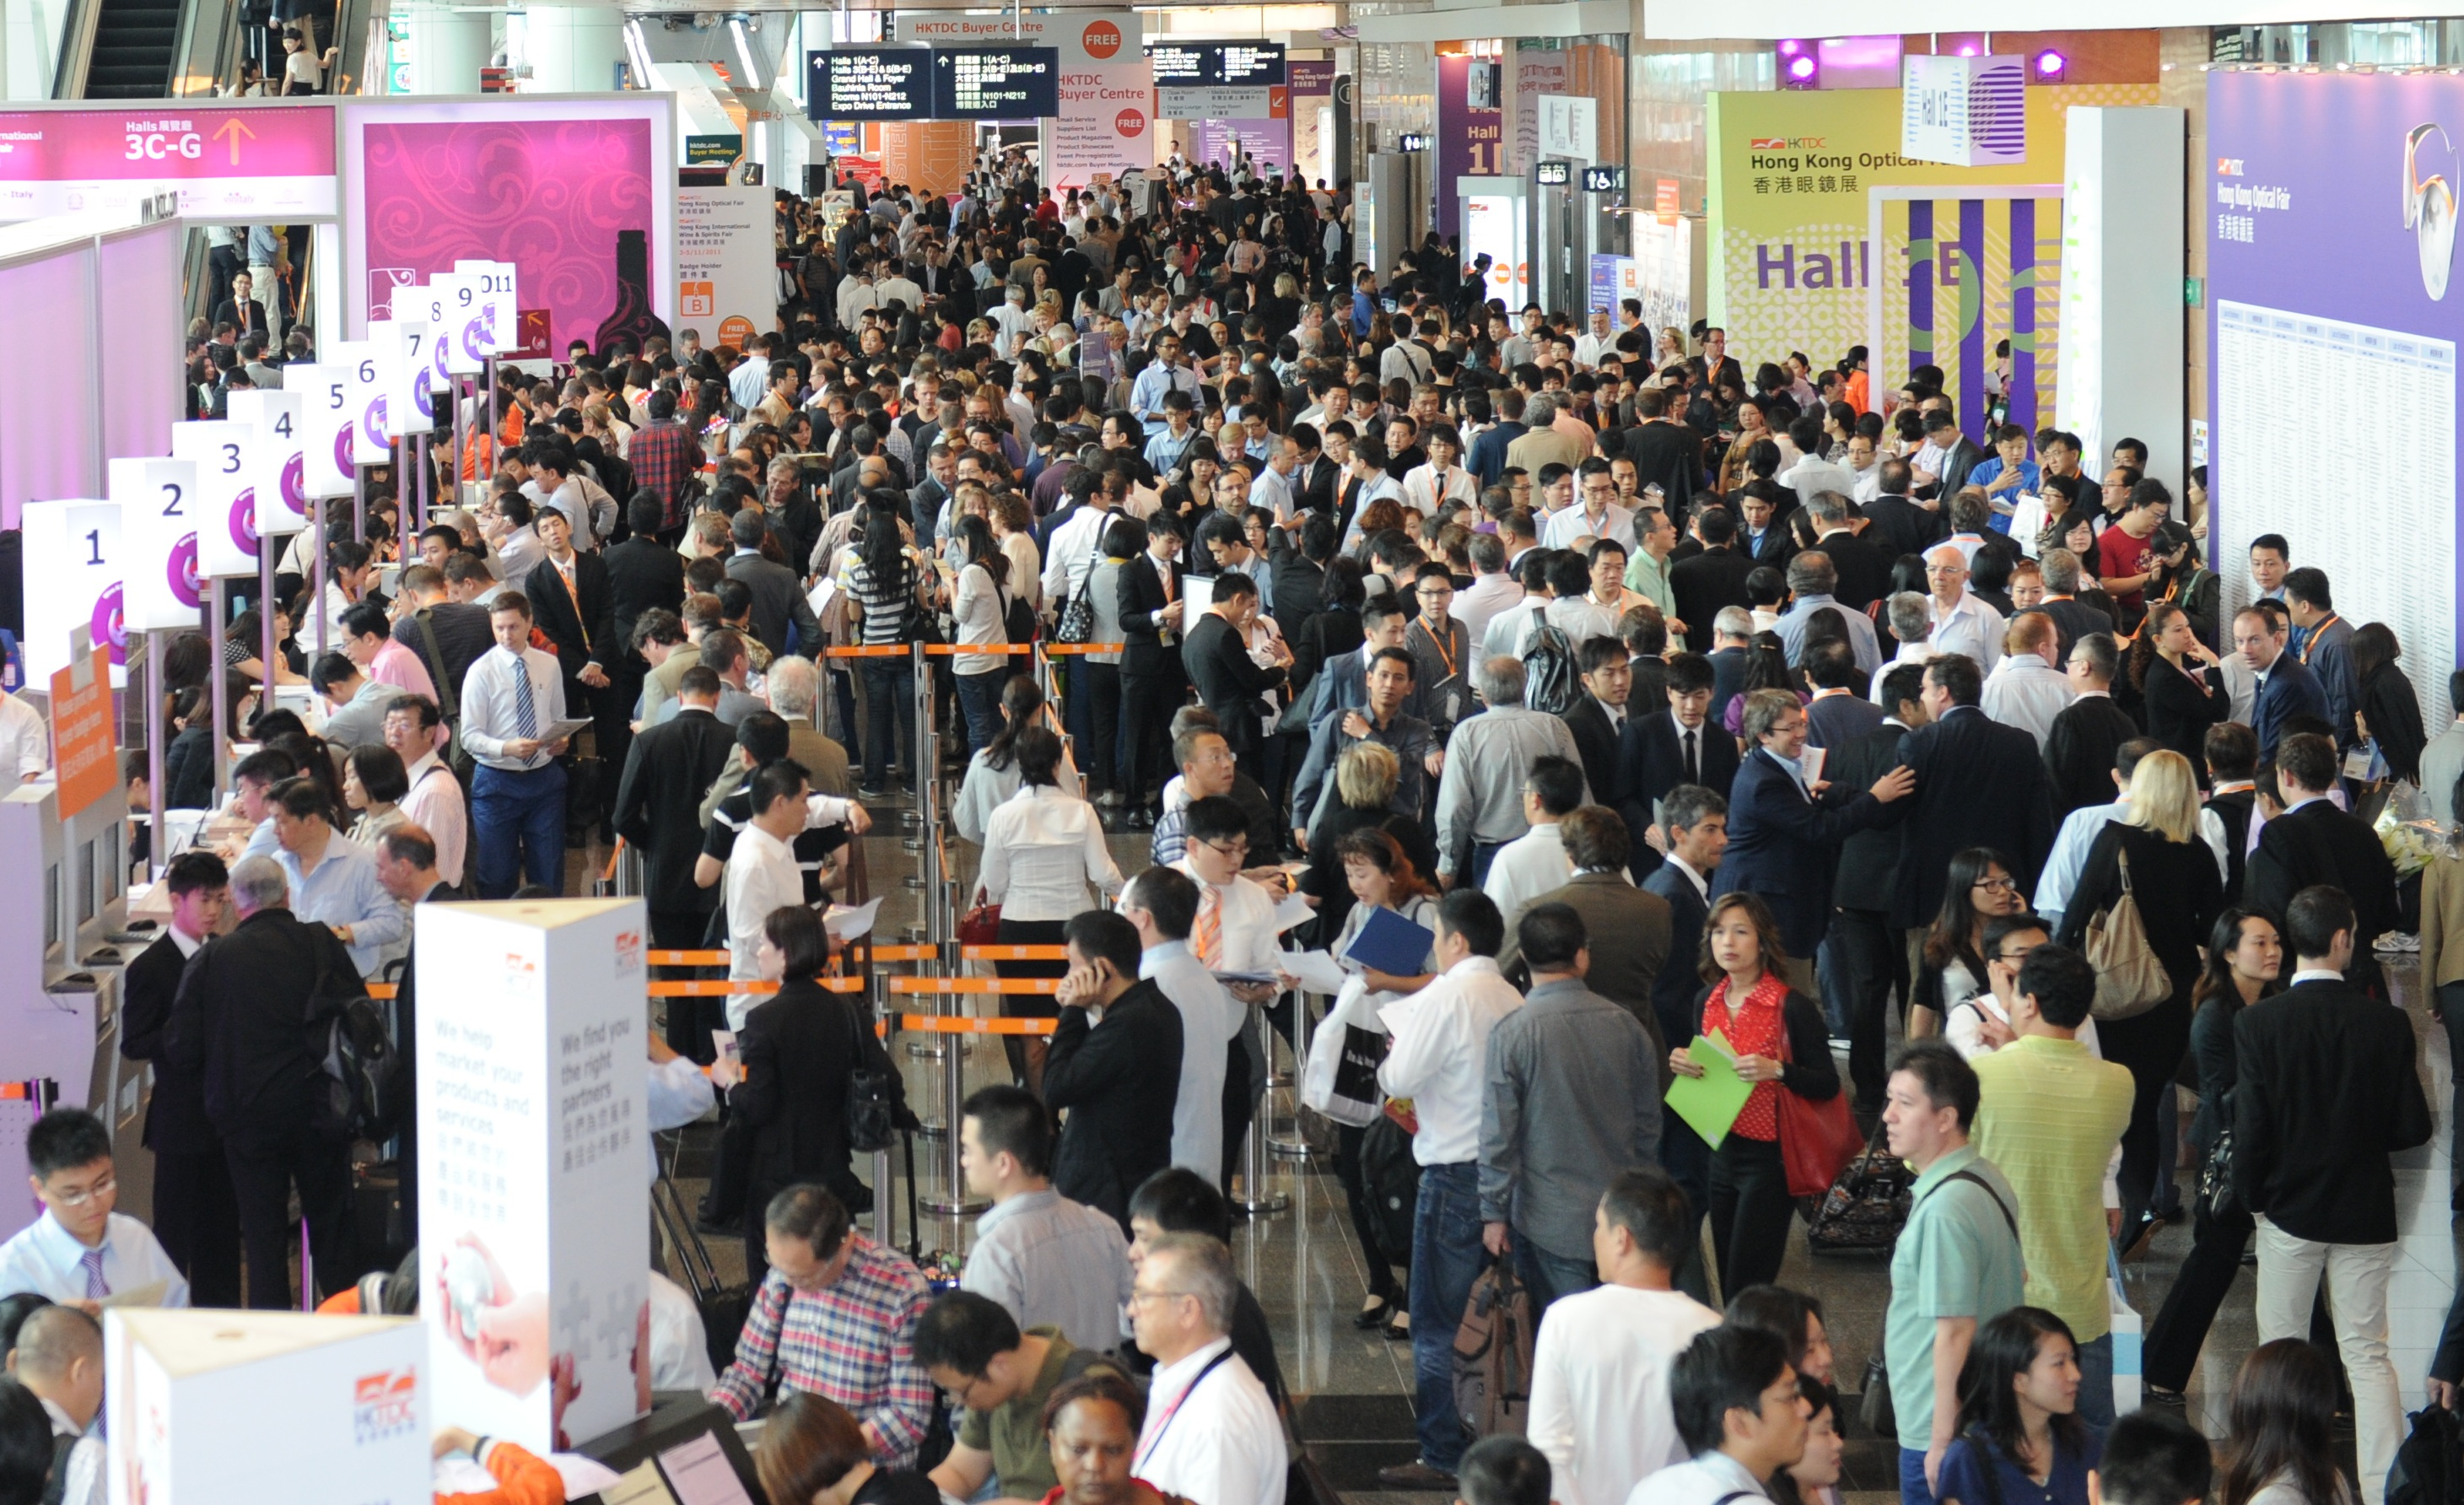 e1f770267b The 19th HKTDC Hong Kong Optical Fair opened today with more than 600  exhibitors from 20 countries and regions taking part